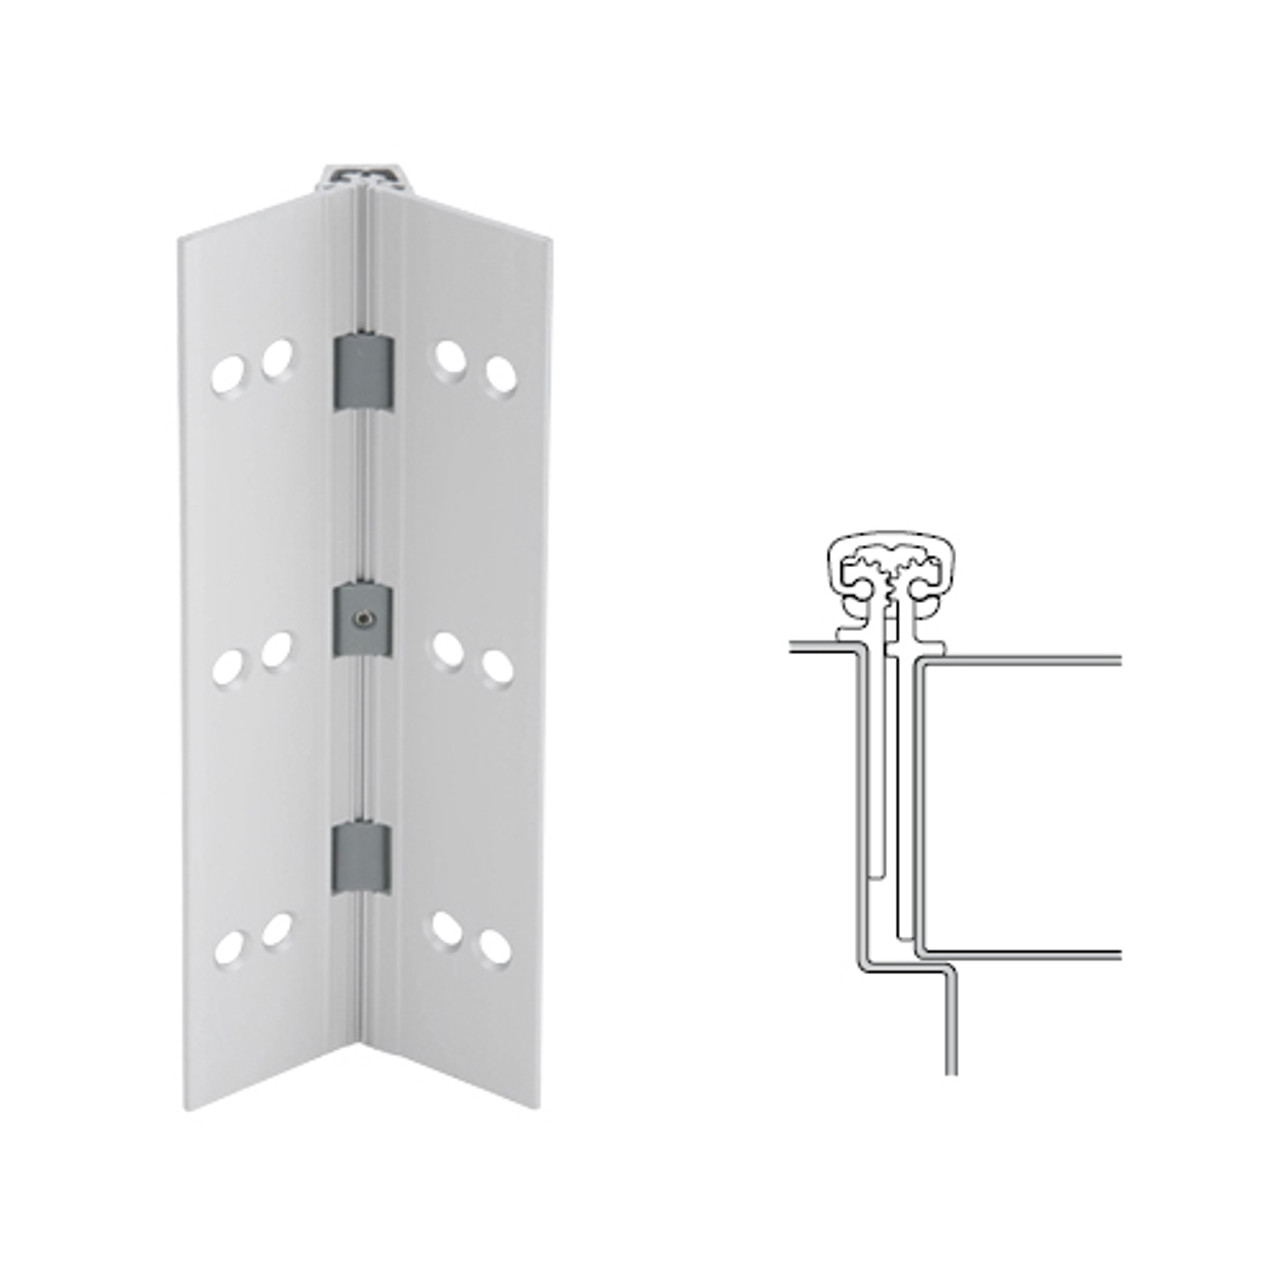 026XY-US28-83-TF IVES Full Mortise Continuous Geared Hinges with Thread Forming Screws in Satin Aluminum